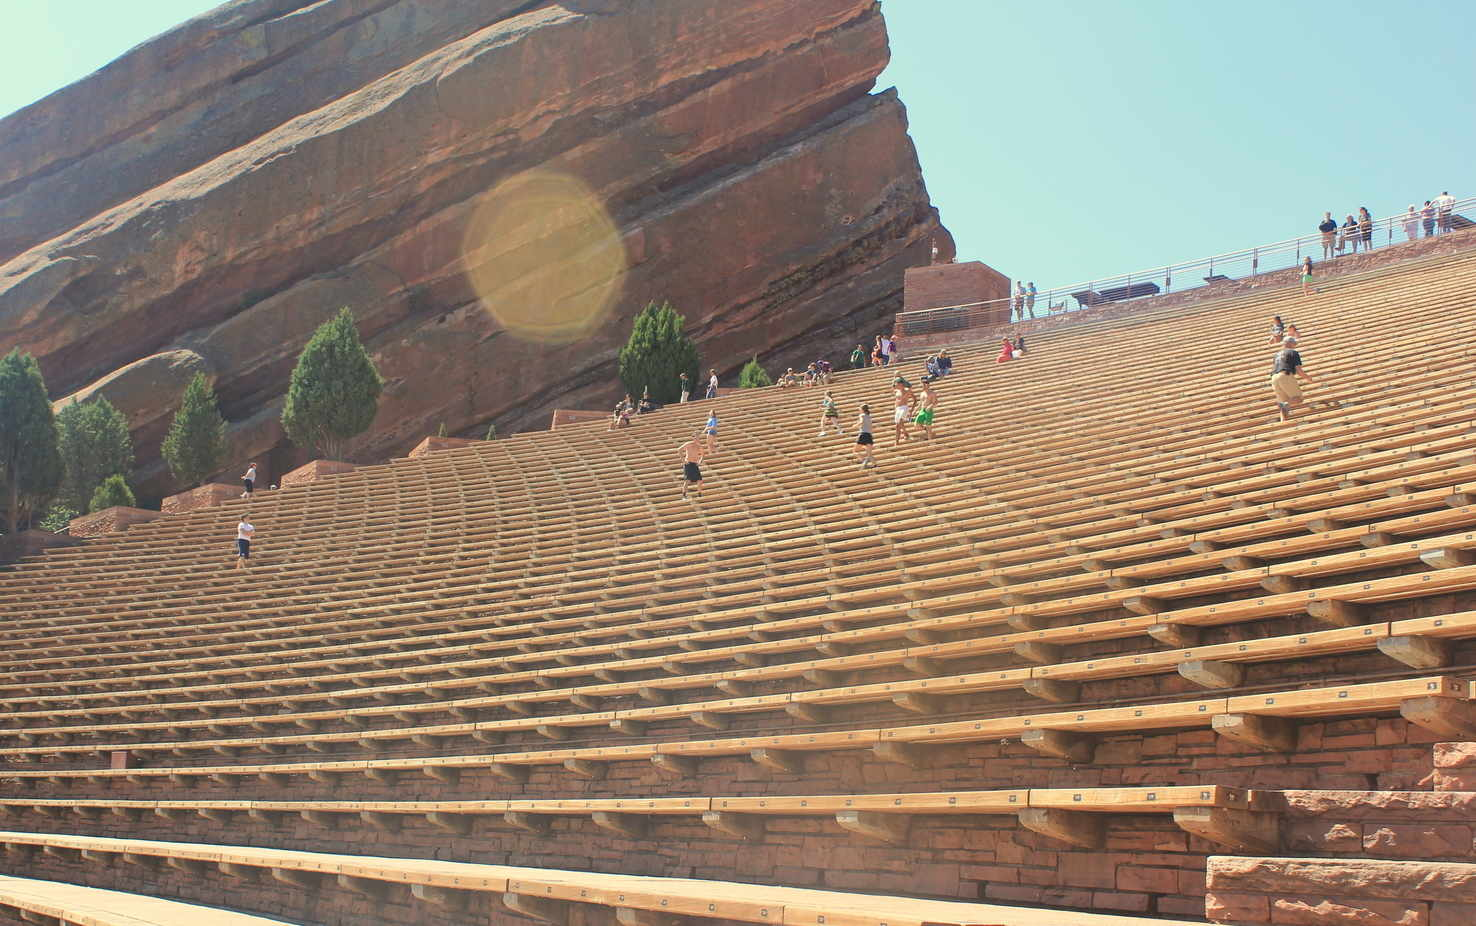 Large red rock amphitheatre seatings